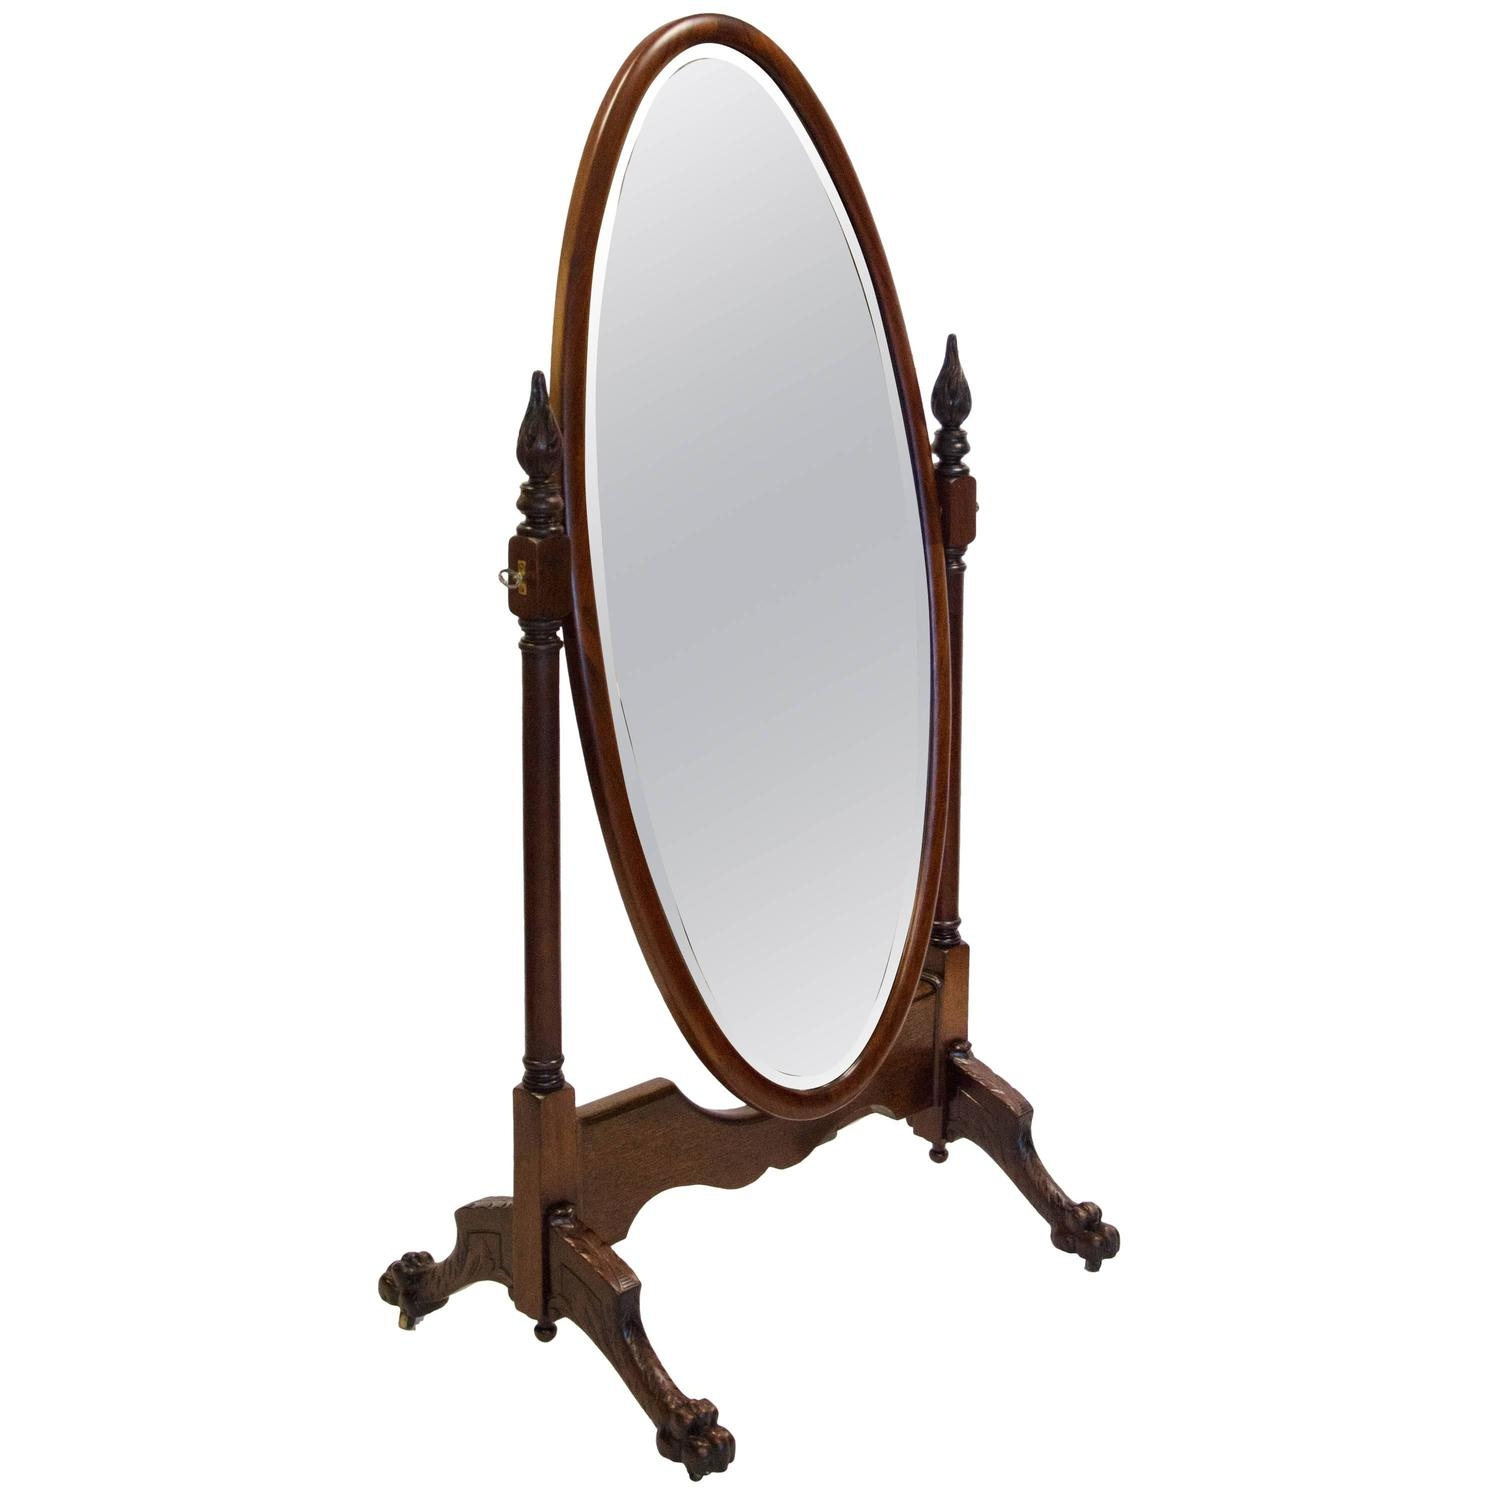 Victorian Floor Mirrors And Full Length Mirrors 24 For Sale At Pertaining To Victorian Standing Mirror (Image 11 of 15)